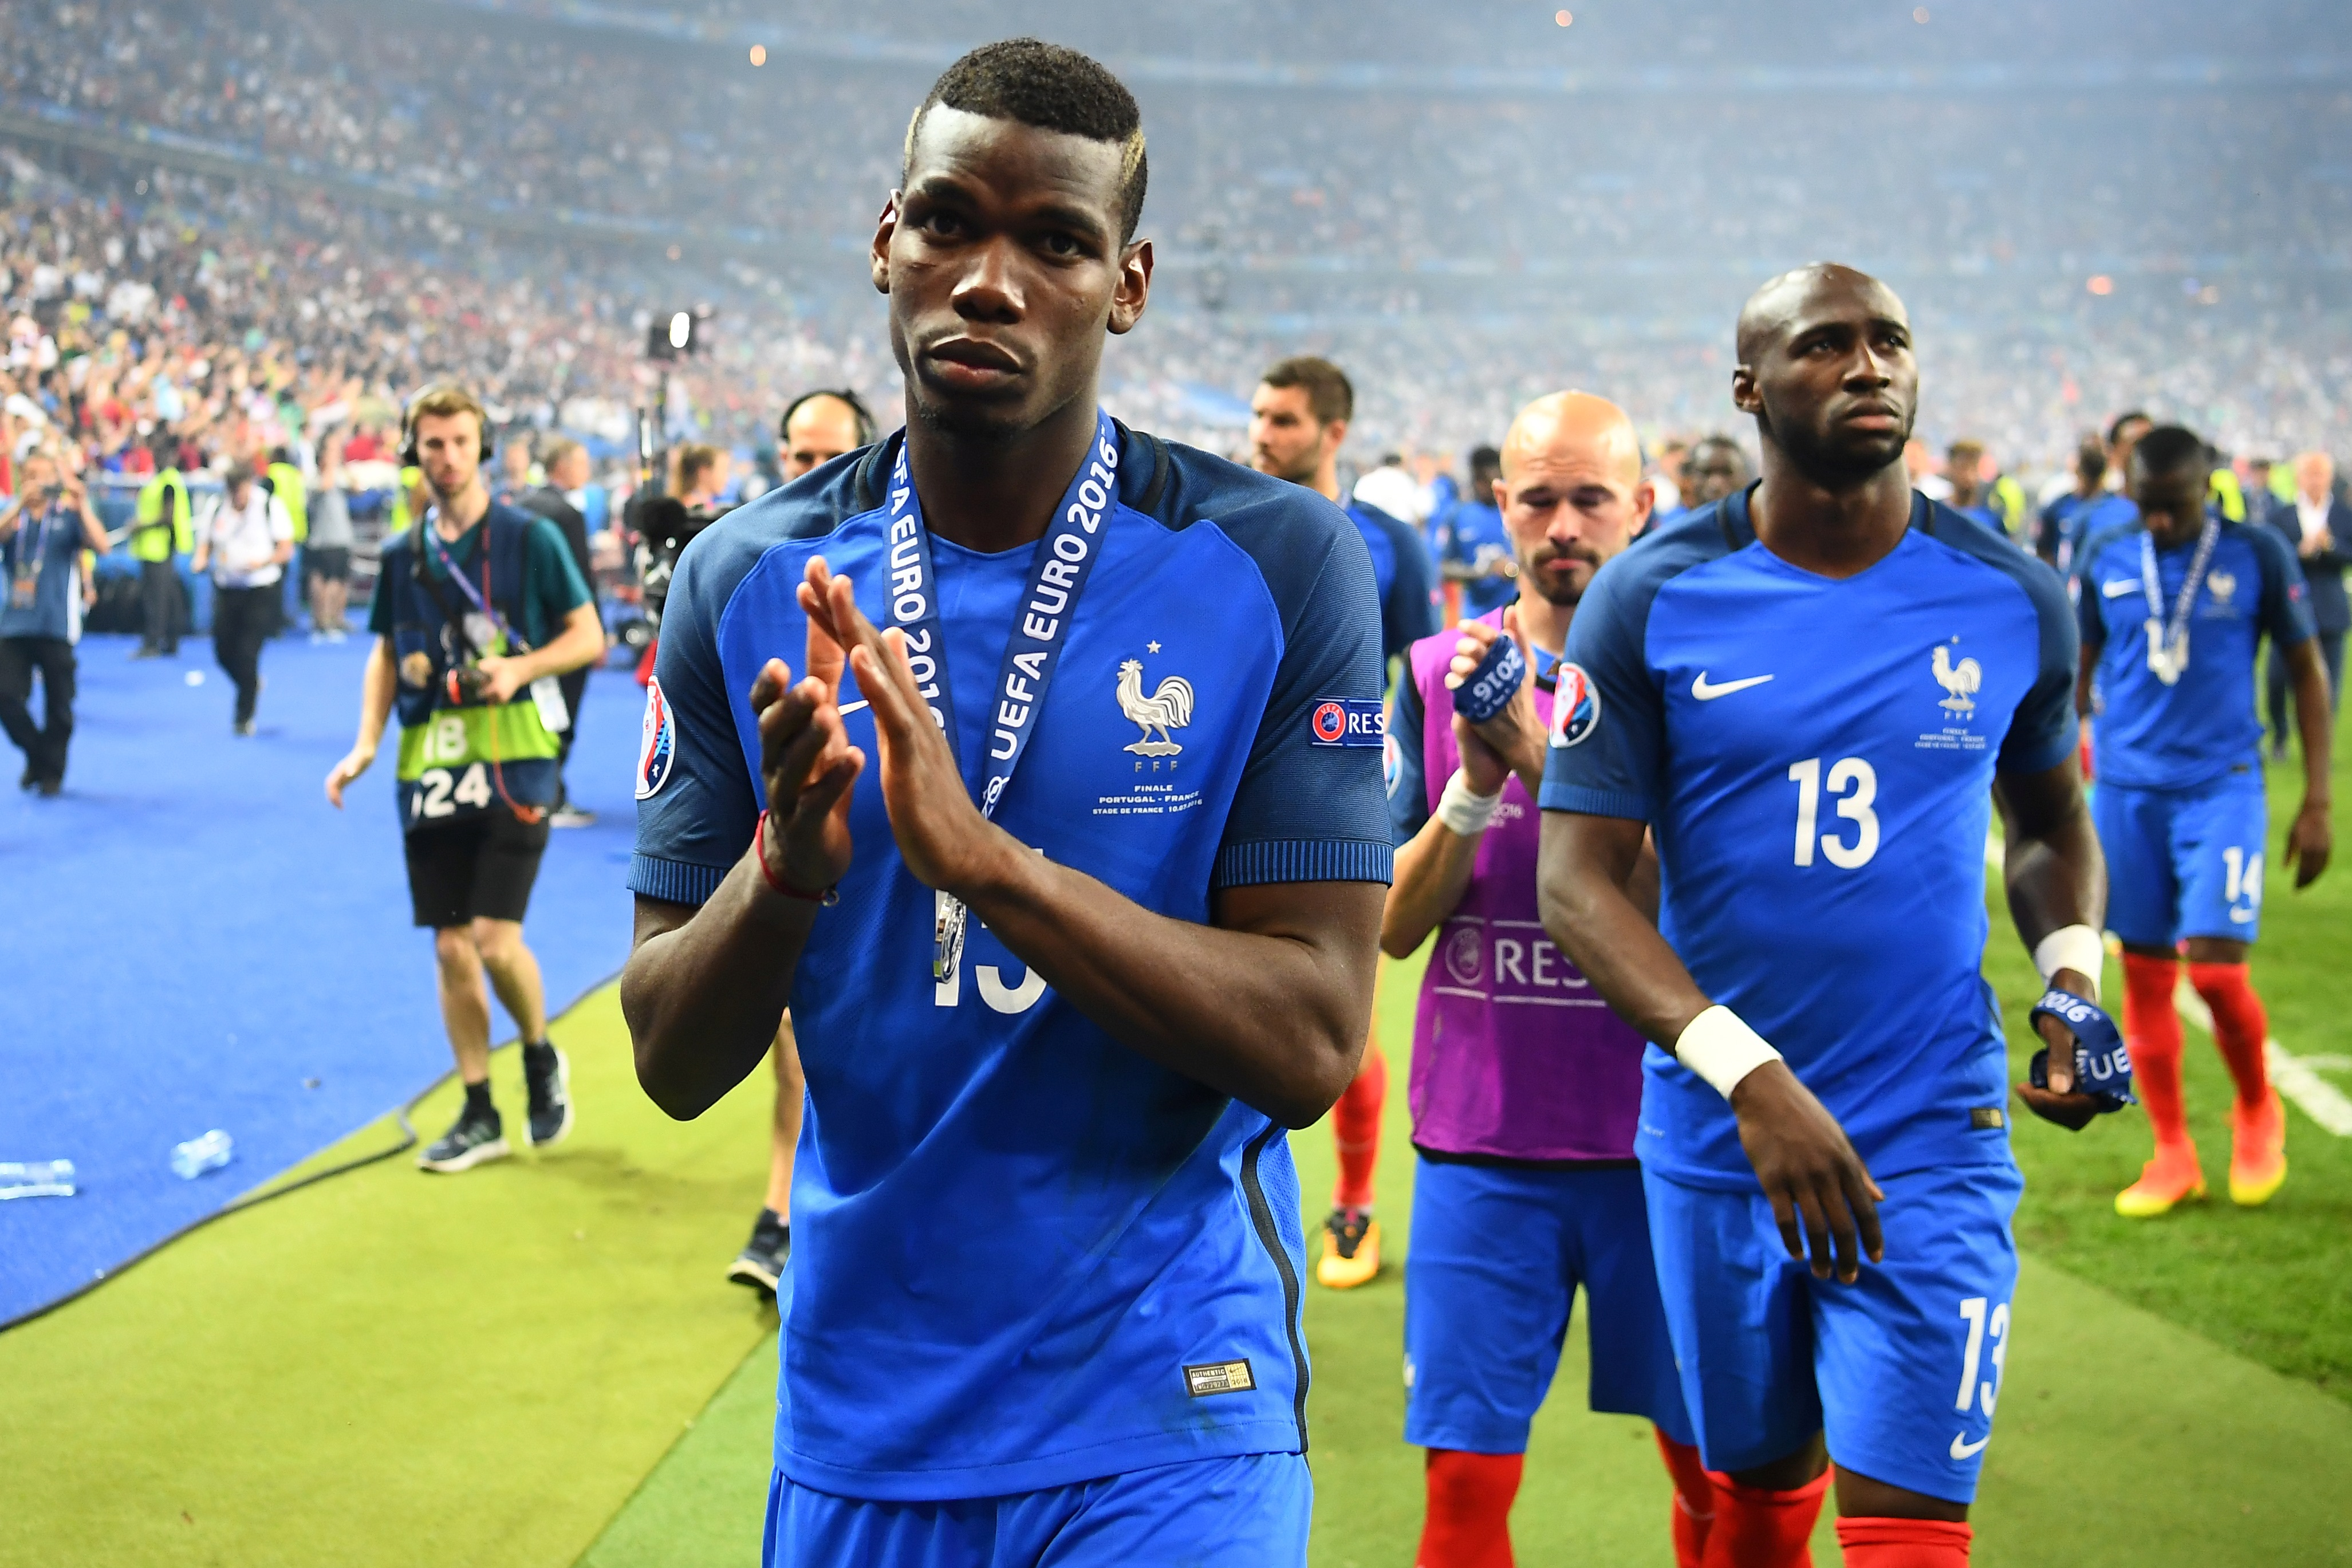 Should Manchester United really pay £100million to re-sign Paul Pogba from Juventus?